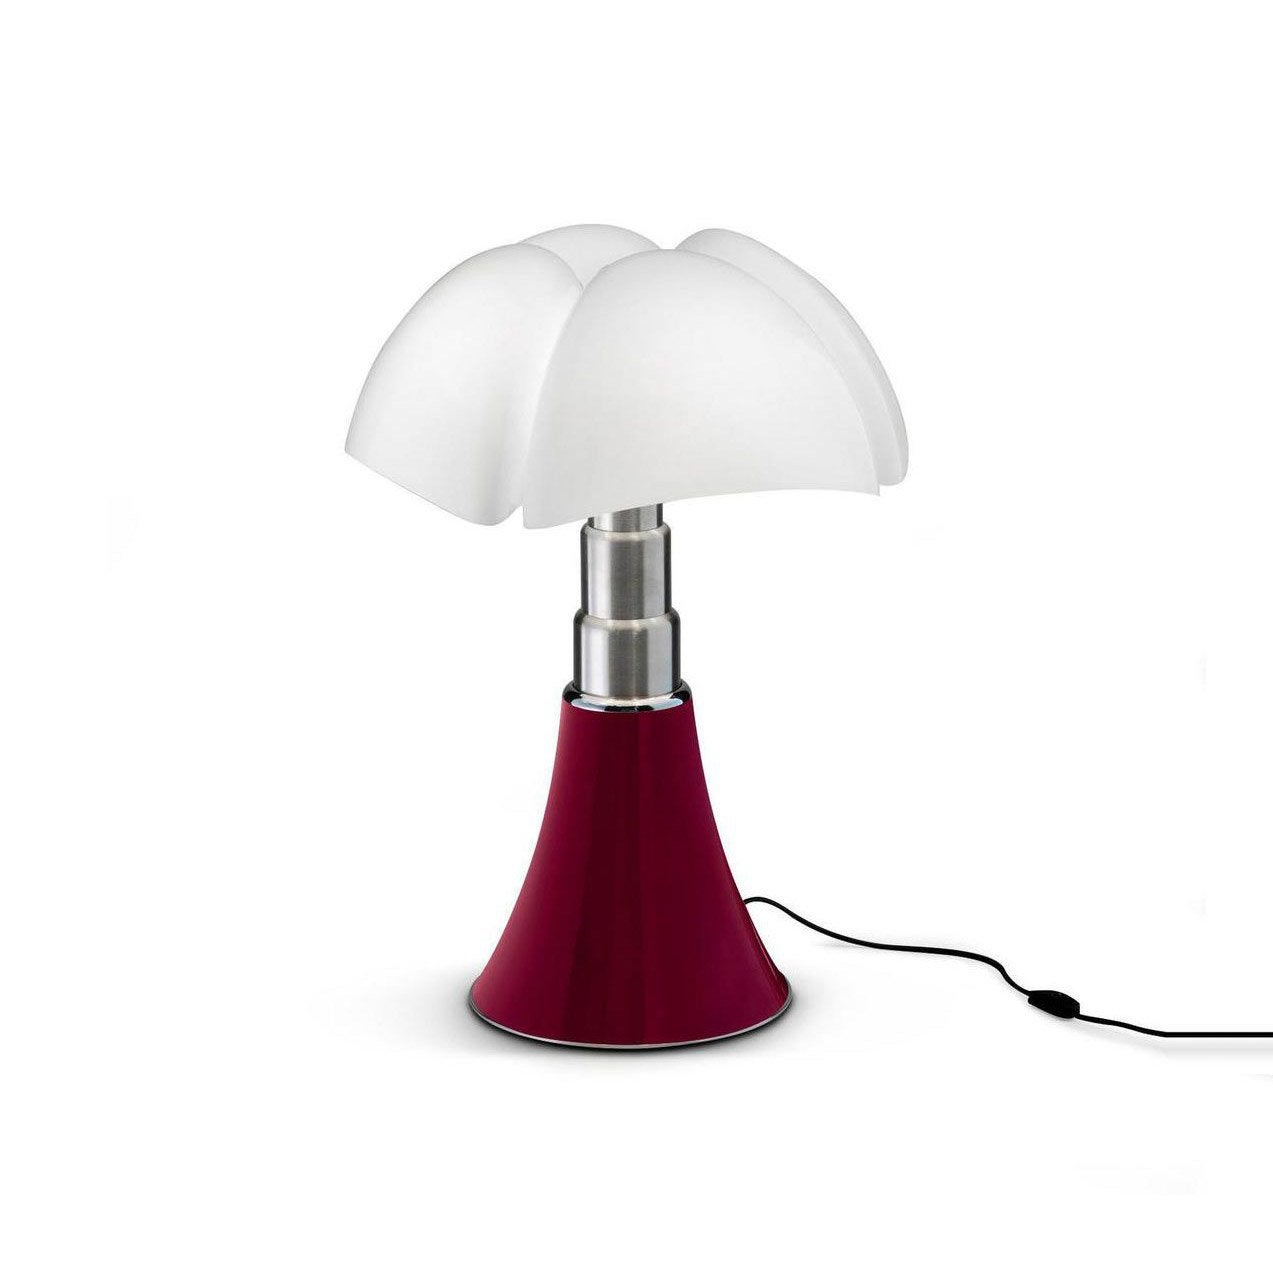 Lampe design Mini Pipistrello rouge, ampoule LED integrée, H.35cm